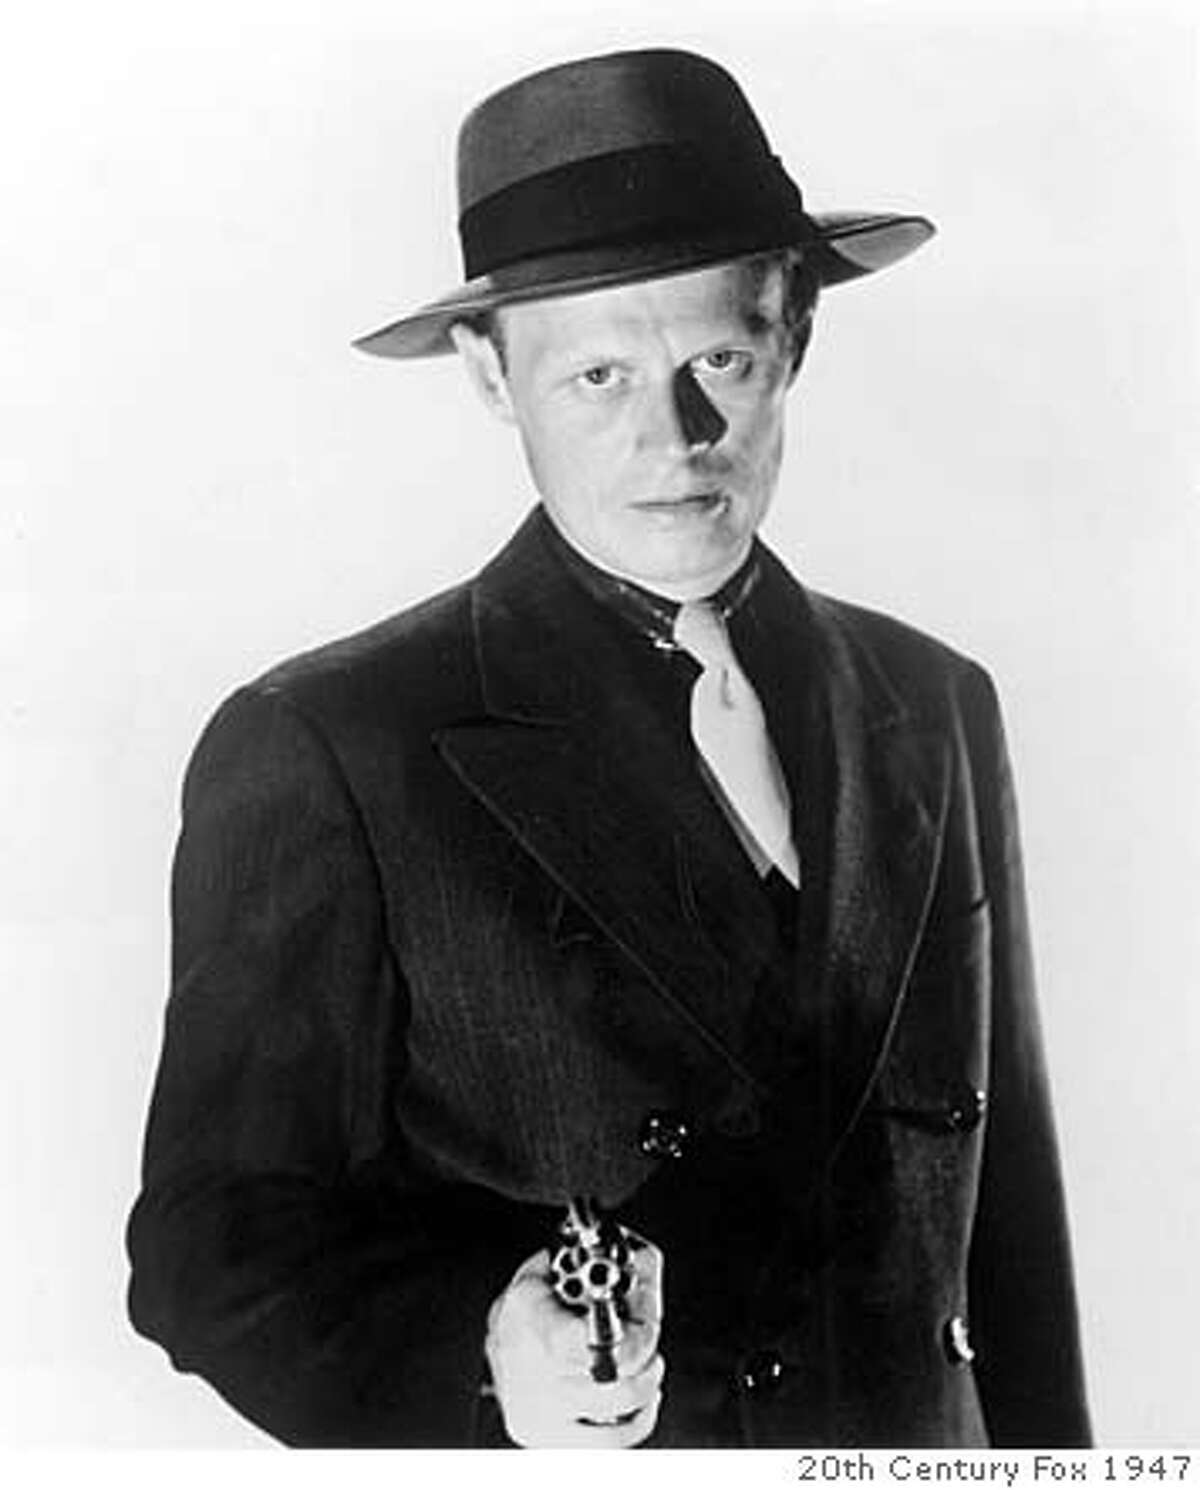 """###Live Caption:(NYT8) NEW YORK -- March 26, 2008 -- OBIT-WIDMARK-4 -- Richard Widmark as Tommy Udo, a psychopathic killer in the 1947 gangster film """"Kiss of Death."""" Widmark, whose portrayal of Udo in his first movie role was so repellent and frightening that the actor became a star overnight, died Monday, March 24, 2008 at his home in Roxbury, Conn. He was 93. His death was announced Wednesday morning by his wife, Susan Blanchard. (20TH Century Fox/The New York Times)###Caption History:(NYT8) NEW YORK -- March 26, 2008 -- OBIT-WIDMARK-4 -- Richard Widmark as Tommy Udo, a psychopathic killer in the 1947 gangster film """"Kiss of Death."""" Widmark, whose portrayal of Udo in his first movie role was so repellent and frightening that the actor became a star overnight, died Monday, March 24, 2008 at his home in Roxbury, Conn. He was 93. His death was announced Wednesday morning by his wife, Susan Blanchard. (20TH Century Fox/The New York Times) Ran on: 03-27-2008 Photo caption ###Notes:WIDMARK AS TOMMY UDO###Special Instructions:"""